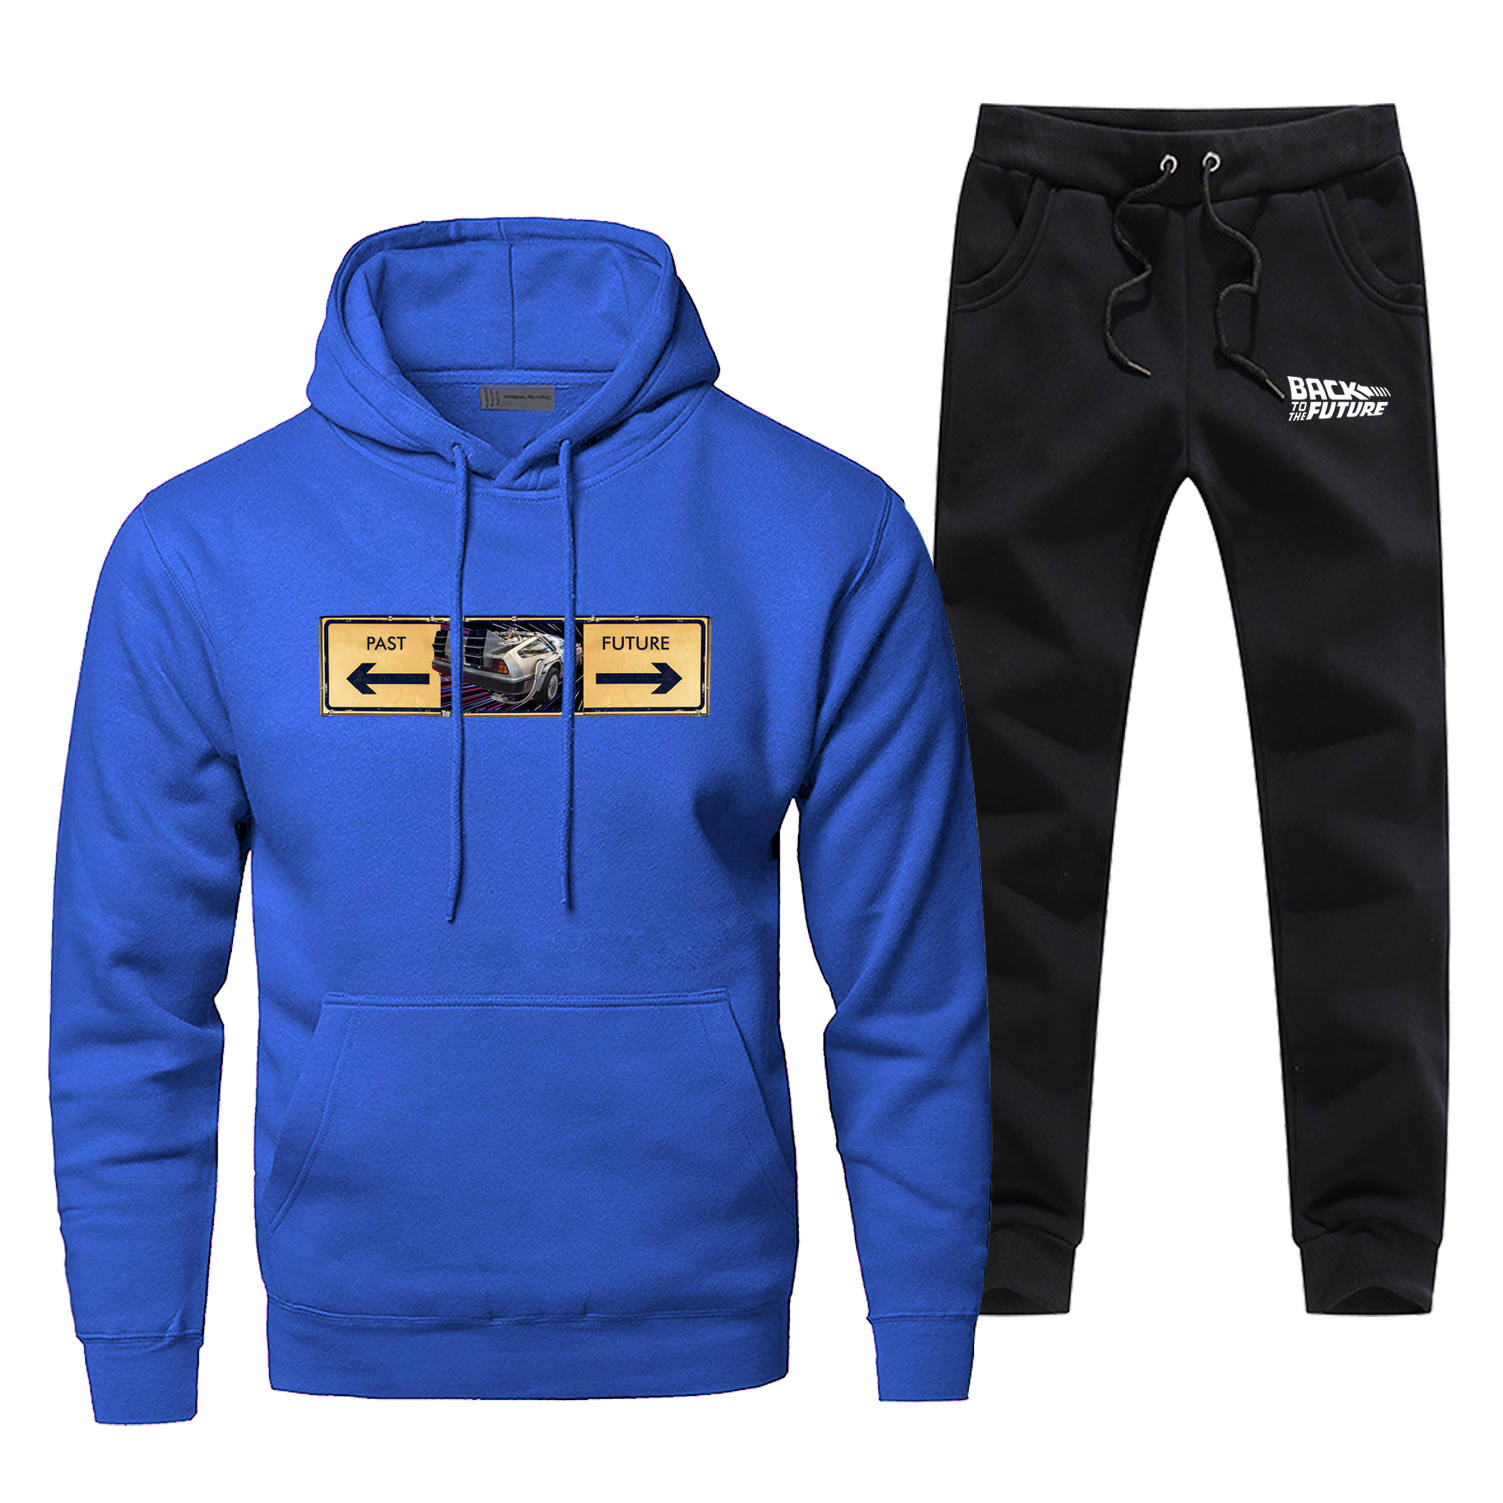 2049 New Men's Sets Back To The Future Complete Man Tracksuit Fashion Casual Pants Sweatshirt Fleece Bodywarmer Sportsman Wear